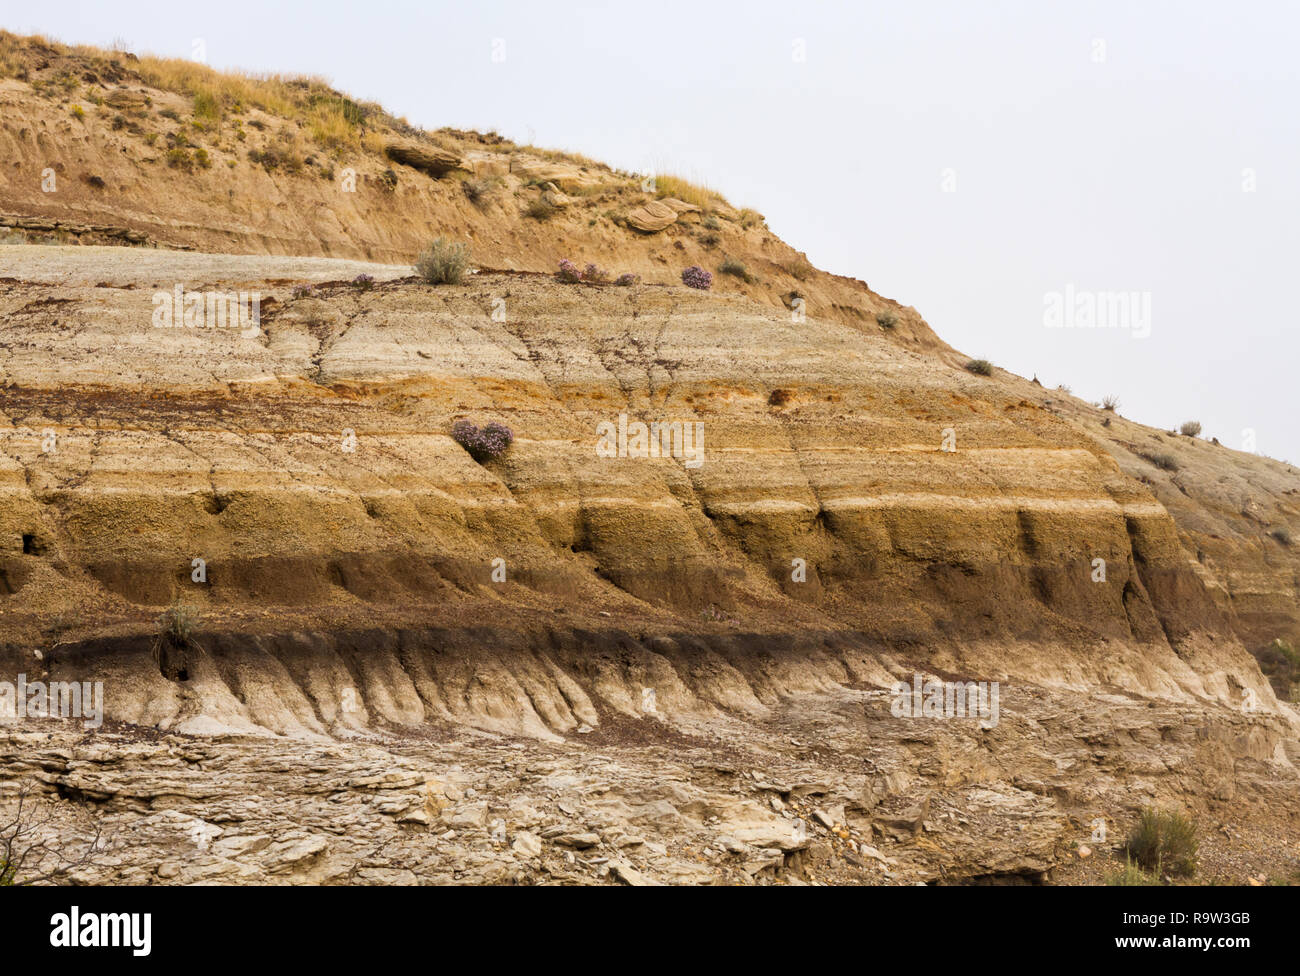 The distinctive Badlands, where dinosaurs once roamed, during the scorching hot summer of 2017 near Drumheller, Alberta, Canada - Stock Image